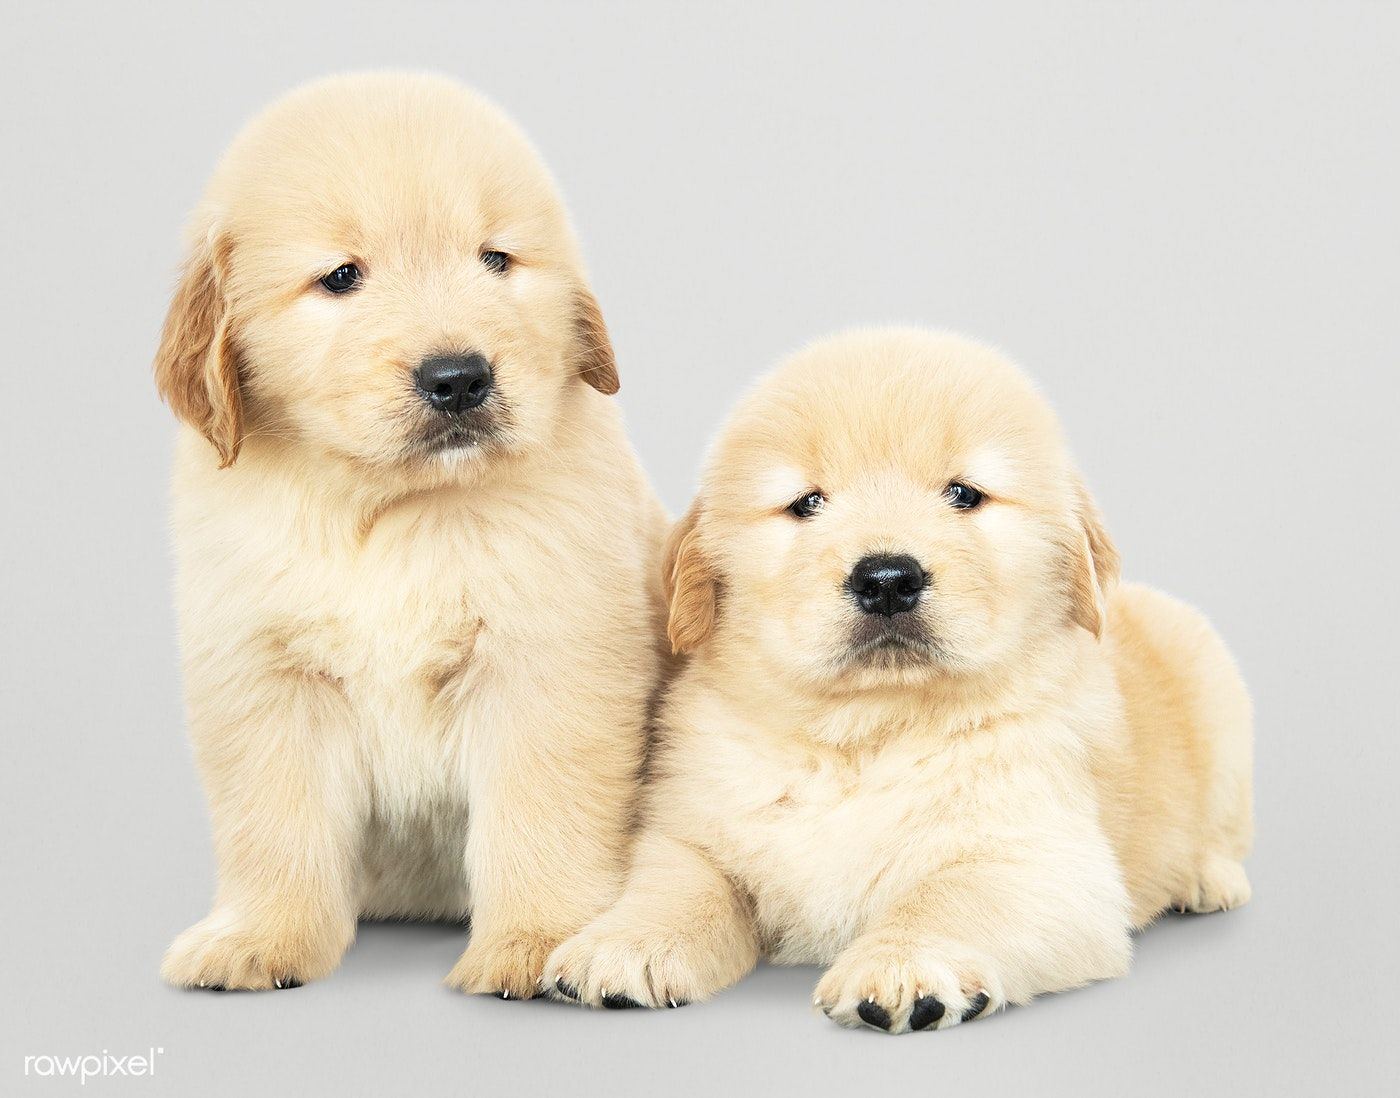 Download Premium Psd Of Two Adorable Golden Retriever Puppies 542214 Golden Retriever Retriever Puppy Puppies